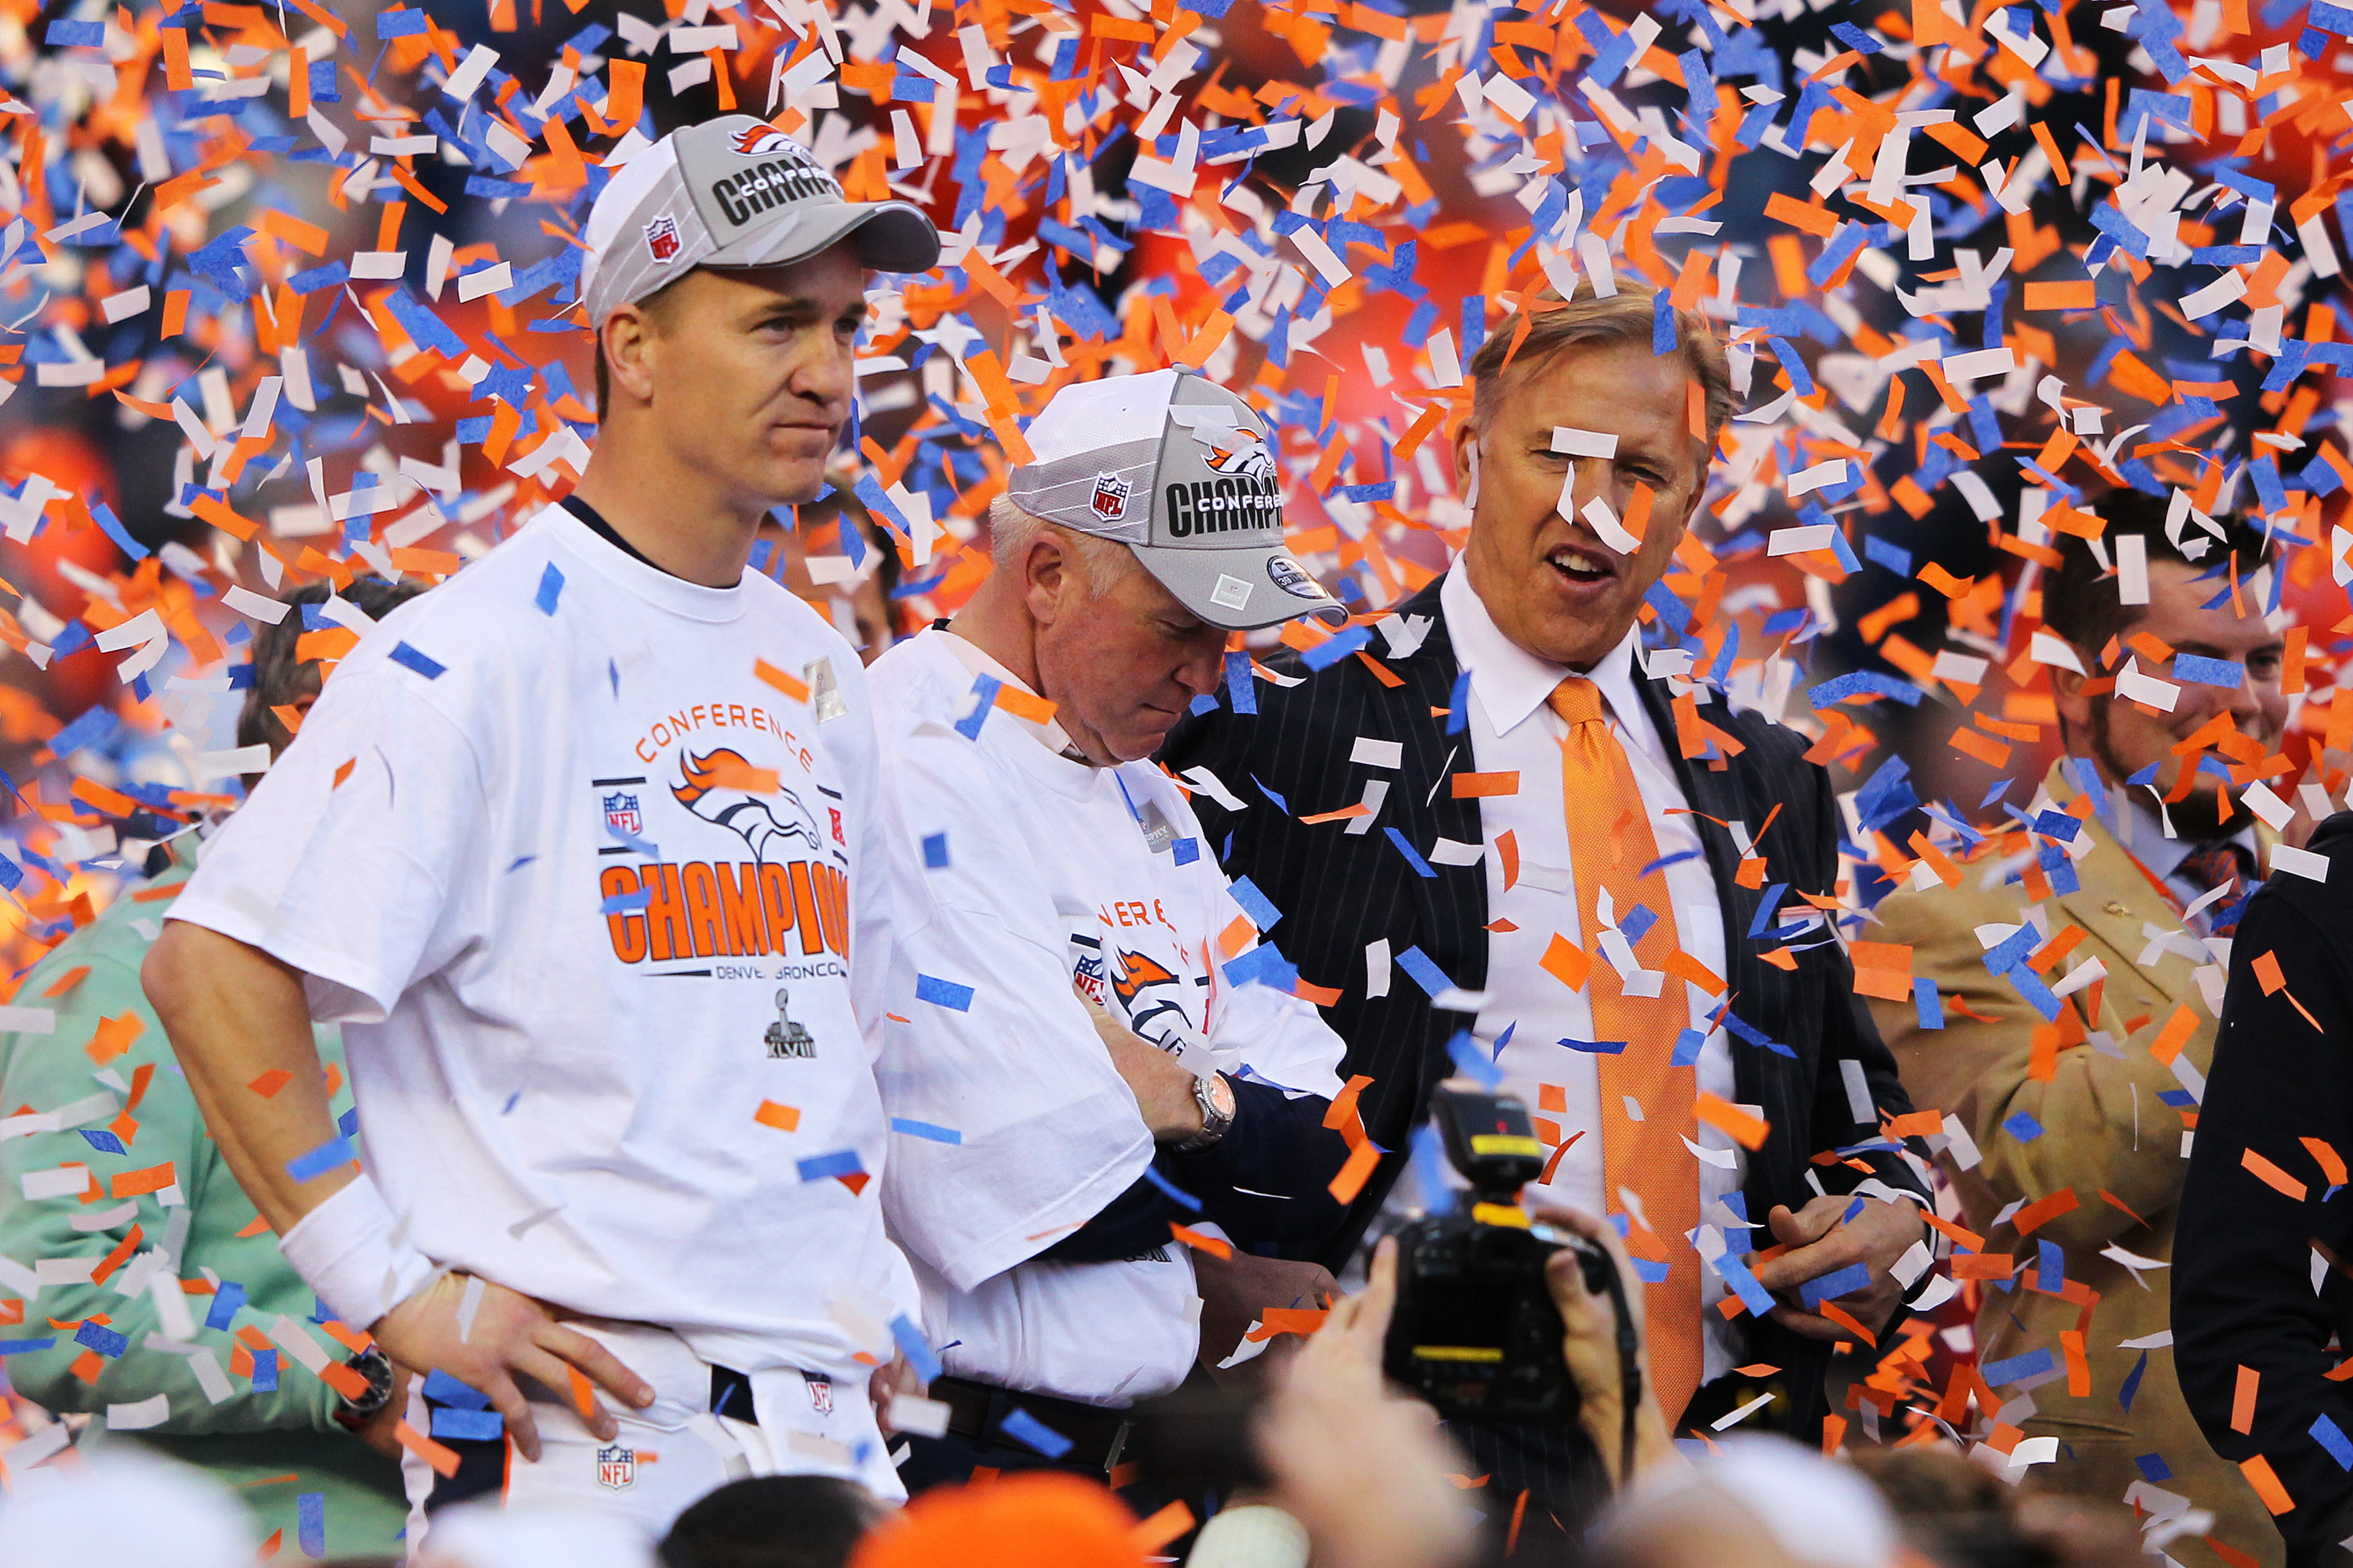 Peyton Manning's pitiless farewell tour continues